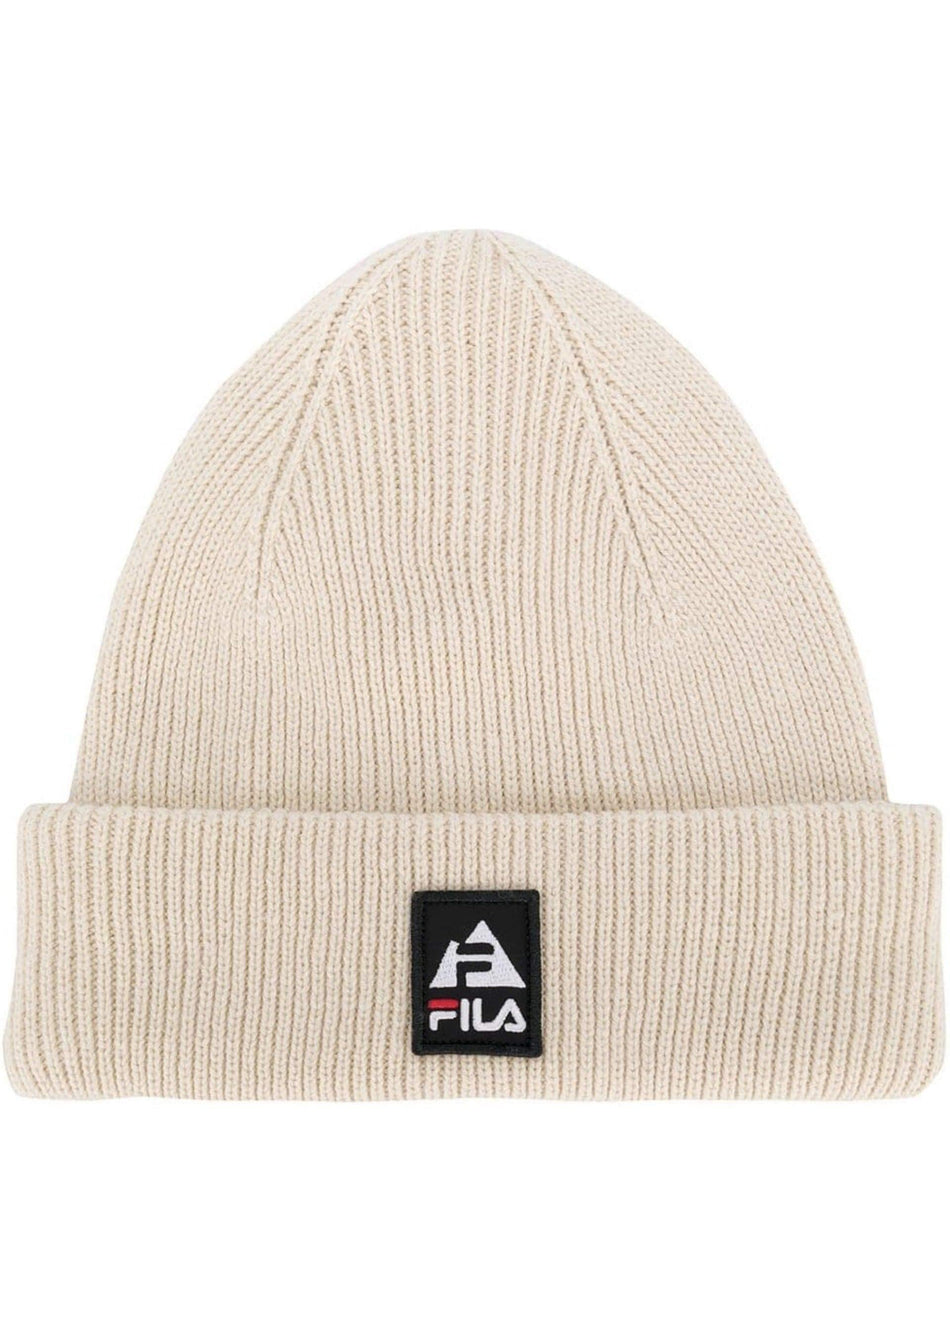 logo patch beanie FILA - Vittorio Citro Boutique